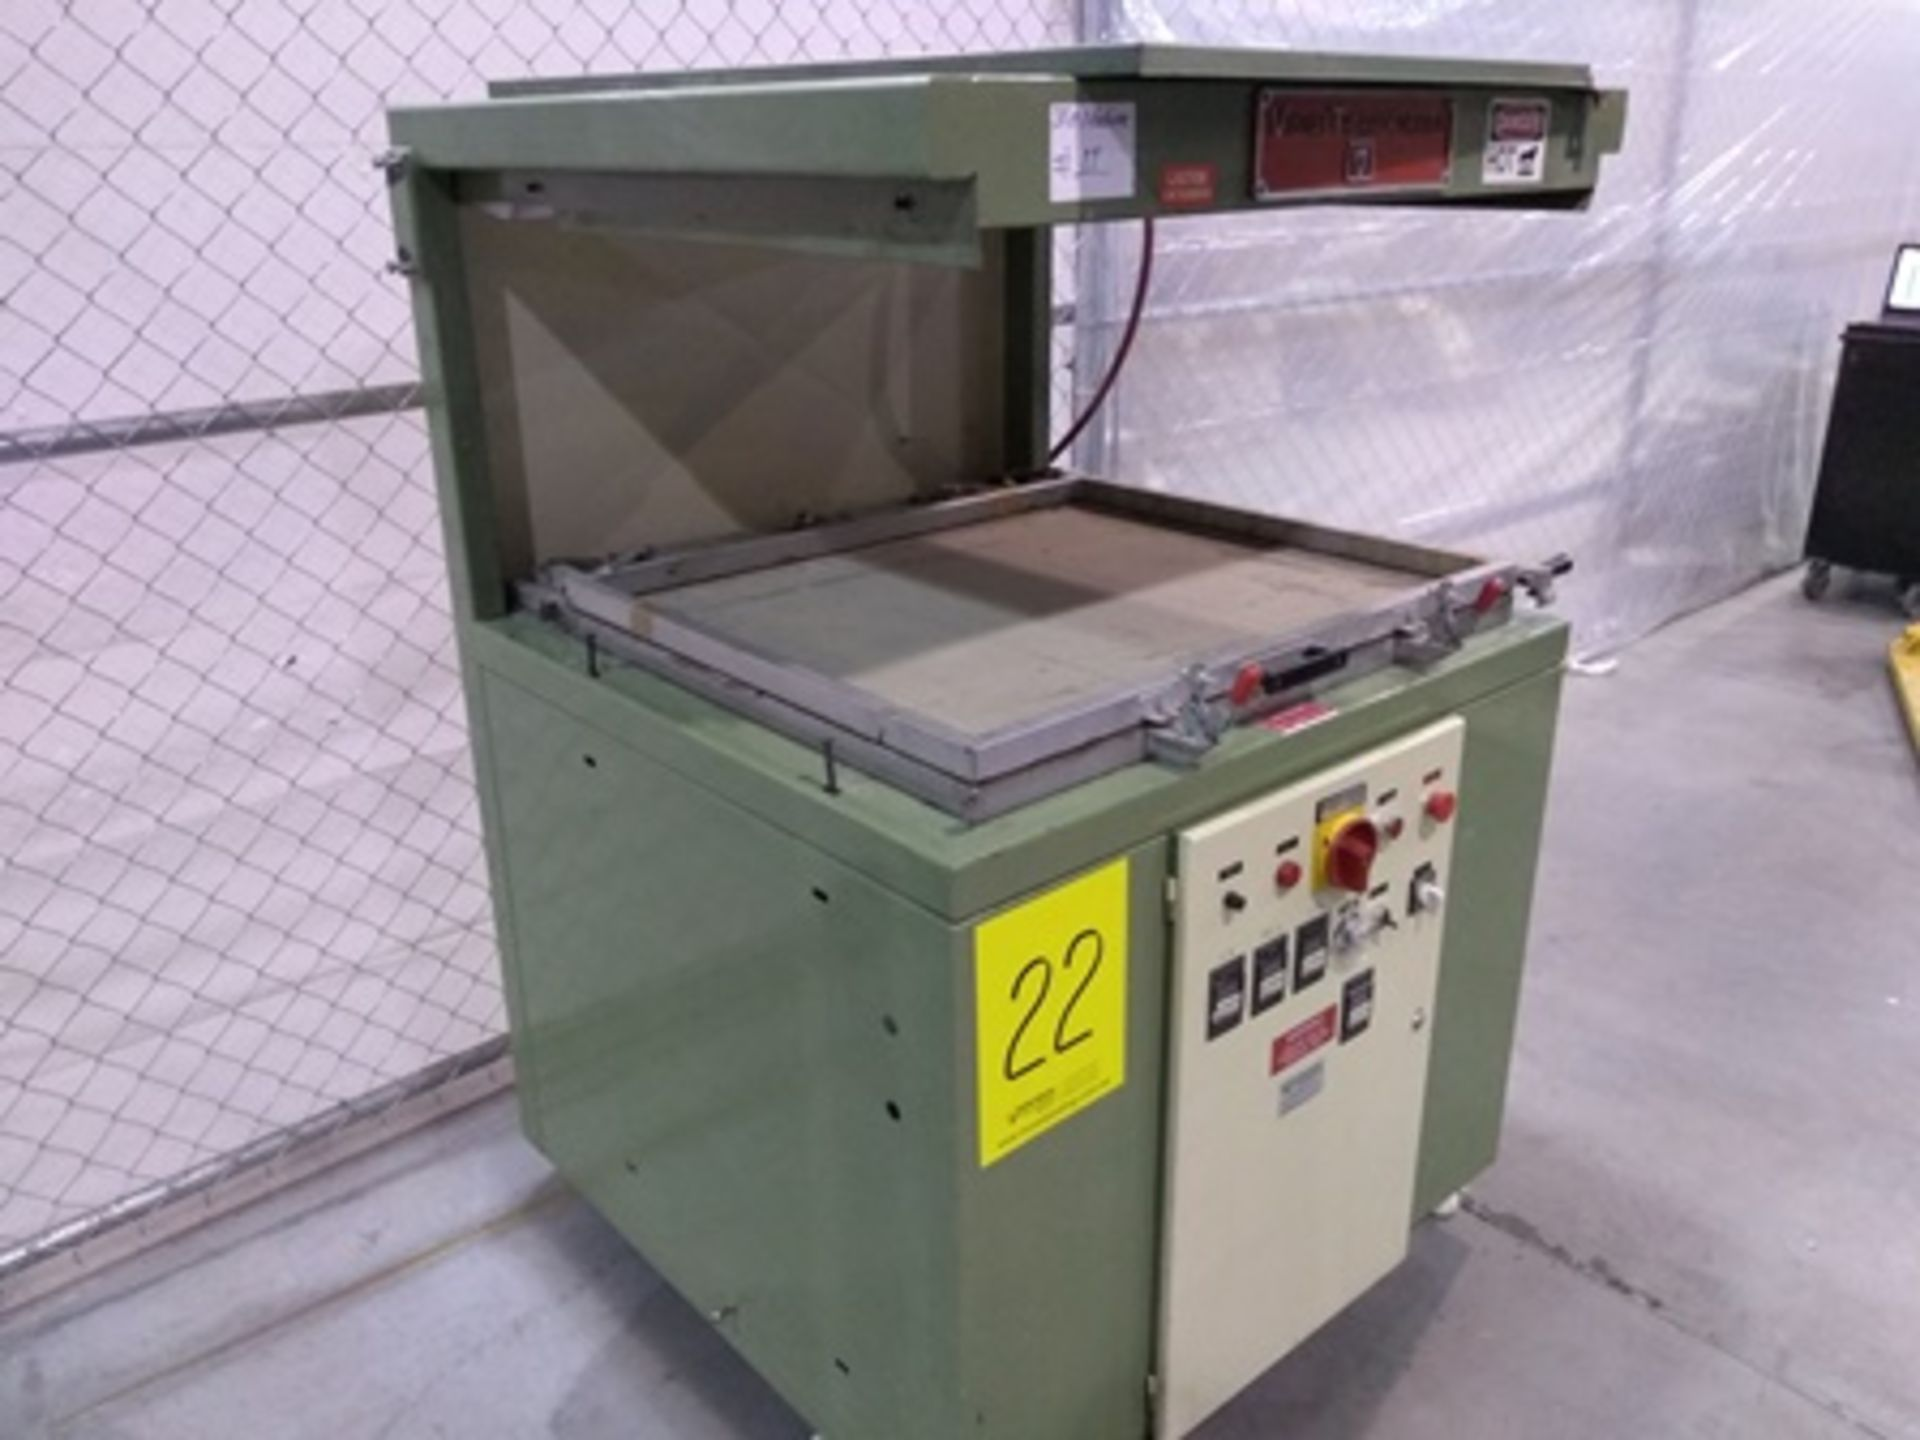 Lot 22 - Visual Thermoforming model CT3036 skin packager, S/N CT3495, 220V, 3PH, 60HZ, 27.5x35 inch...